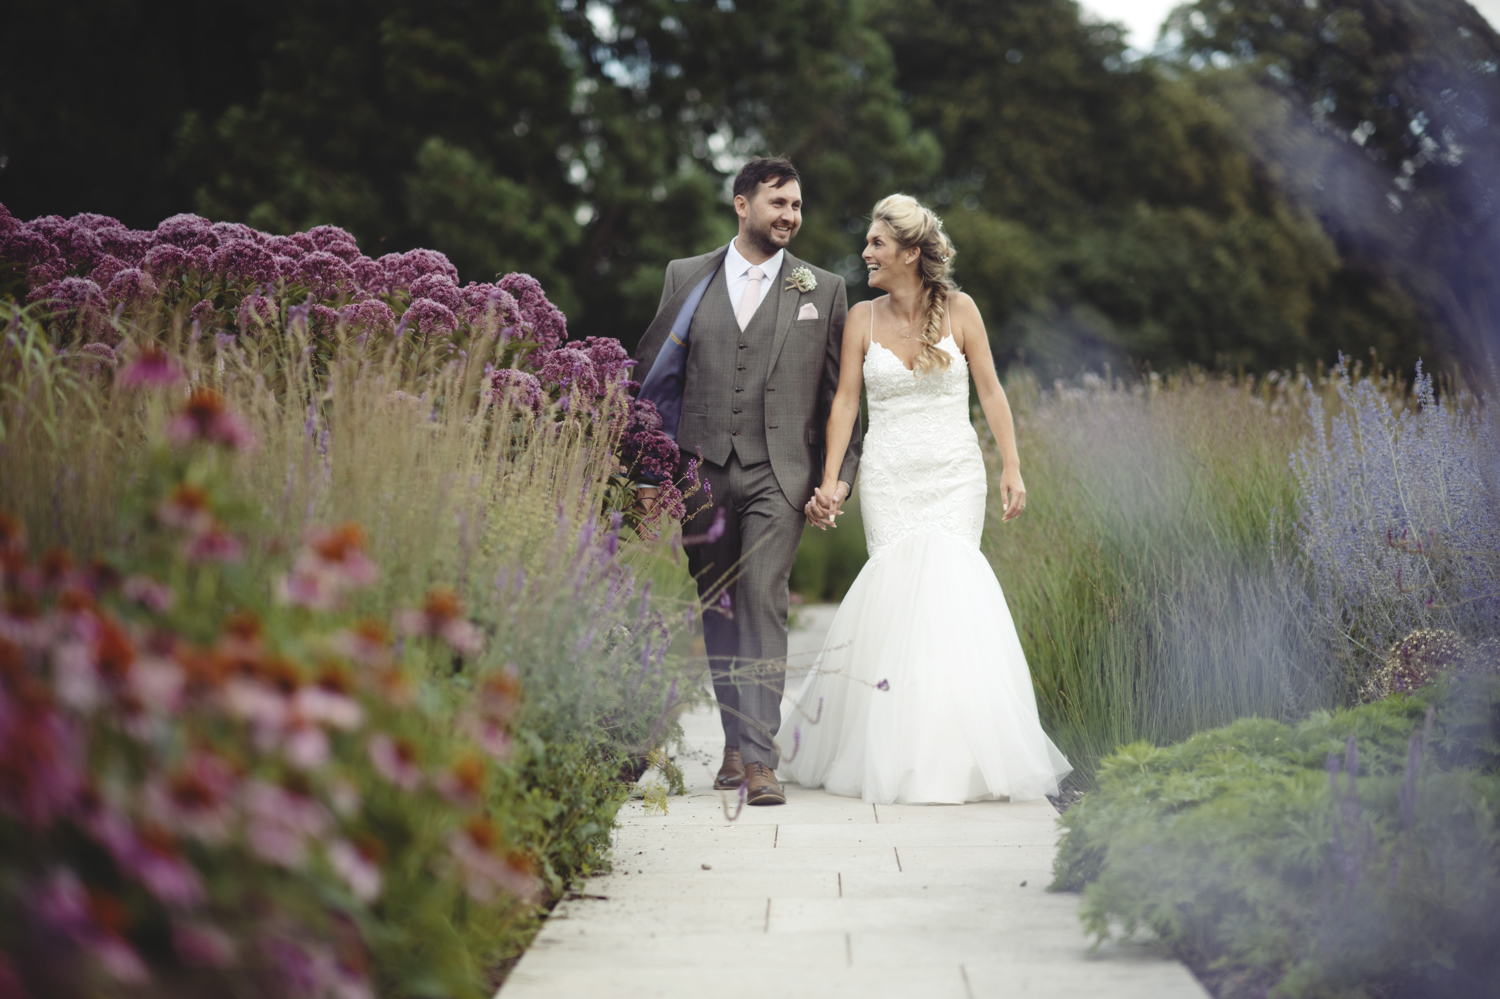 Bride and groom kiss in the gardens at The Fig House, Middleton Lodge Wedding